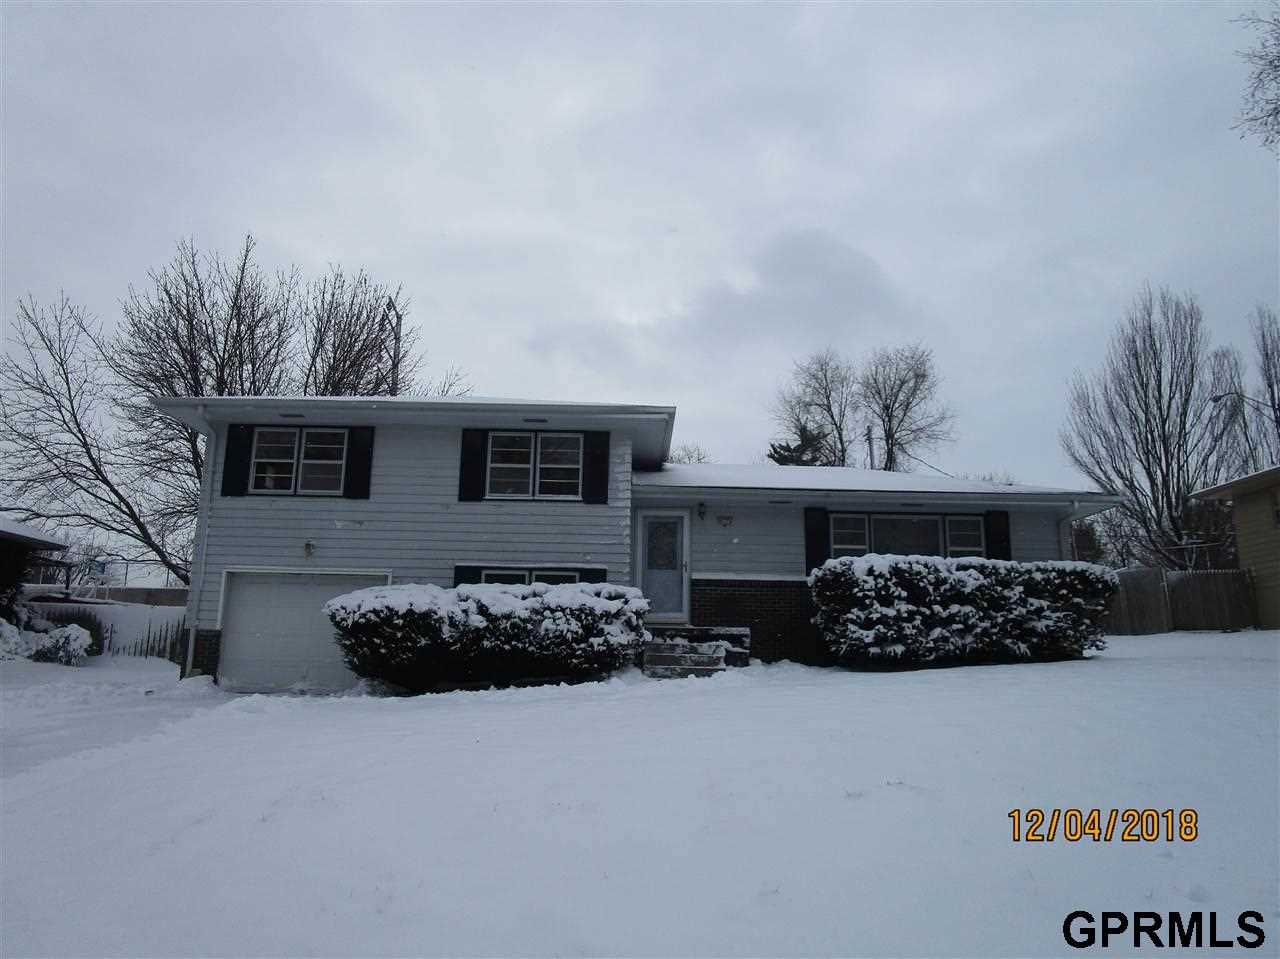 8523 Polk St Ralston, NE 68127 | MLS 21821499 Photo 1